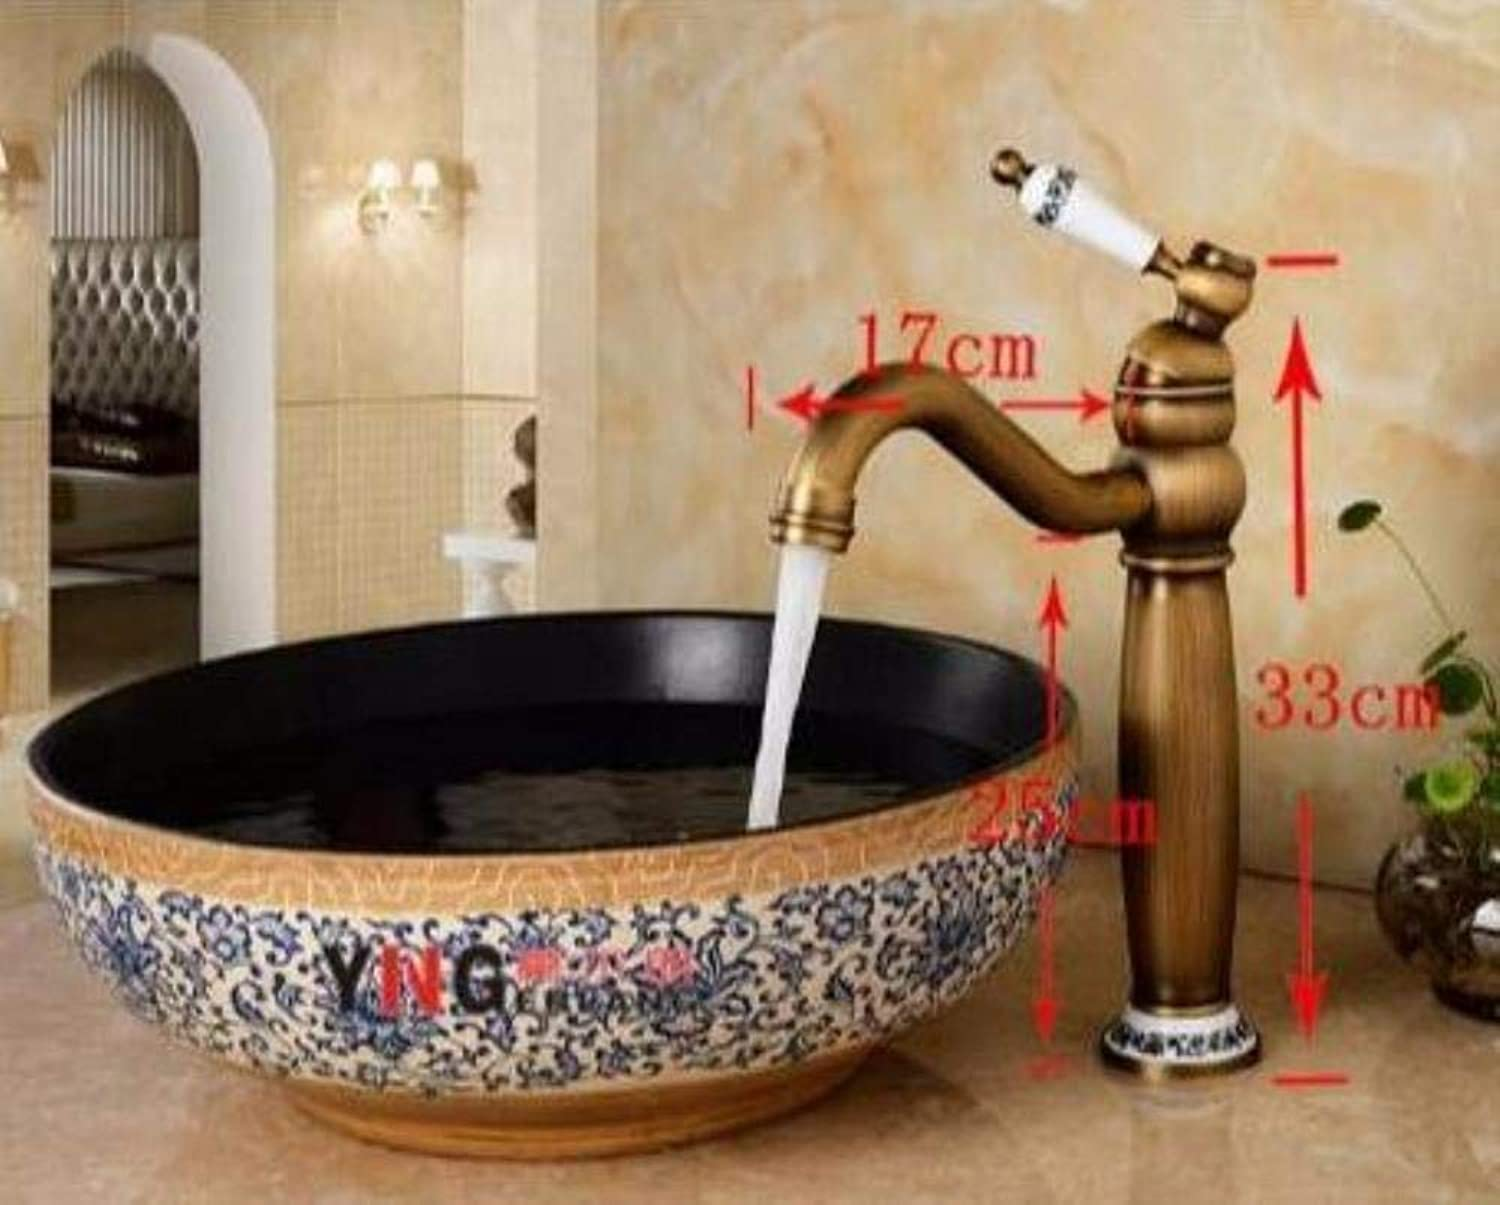 Kai&Guo fashion solid brass construction bathroom hot and cold bronze finish basin faucet,tap sink mixer ceramic base,long